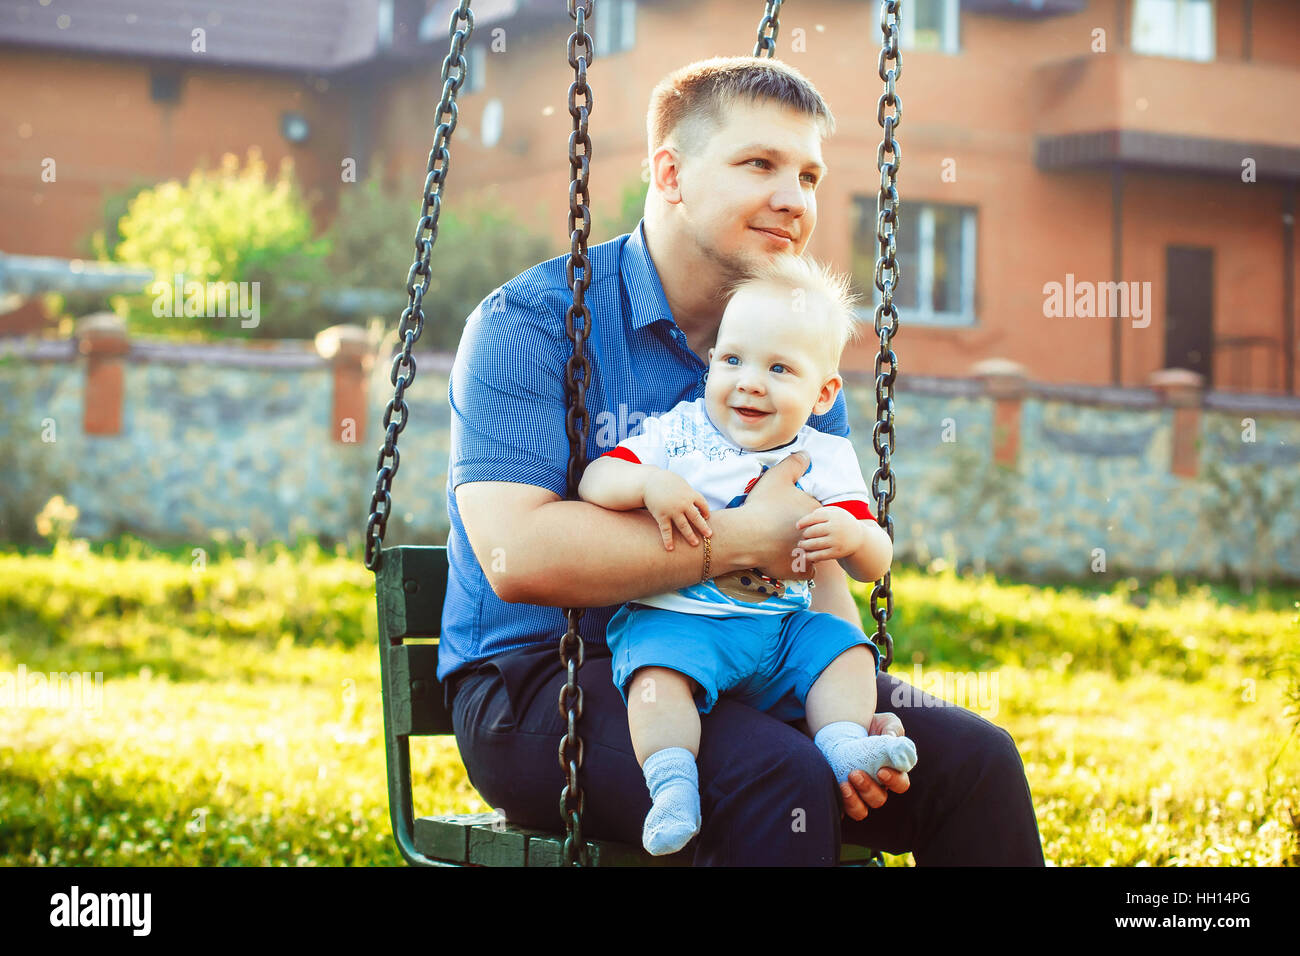 father, hugs a child who laughs - Stock Image